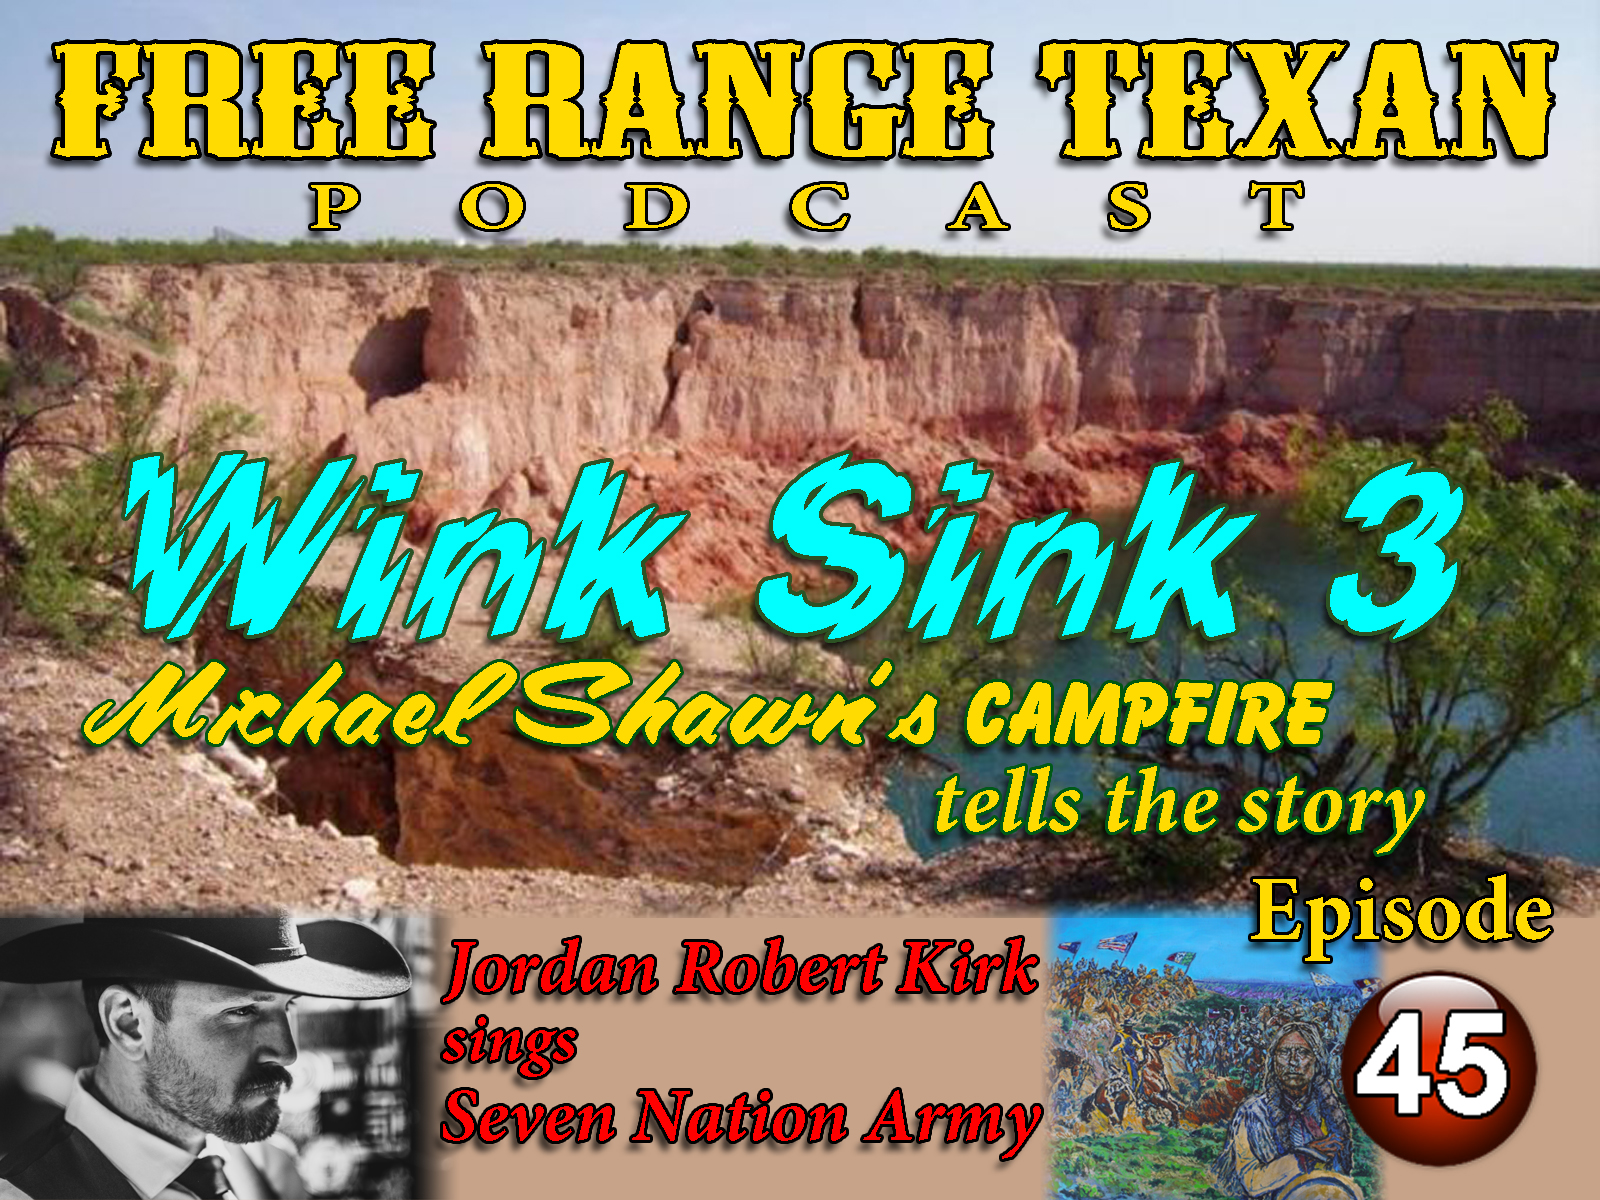 Free Range Texan Episode 45